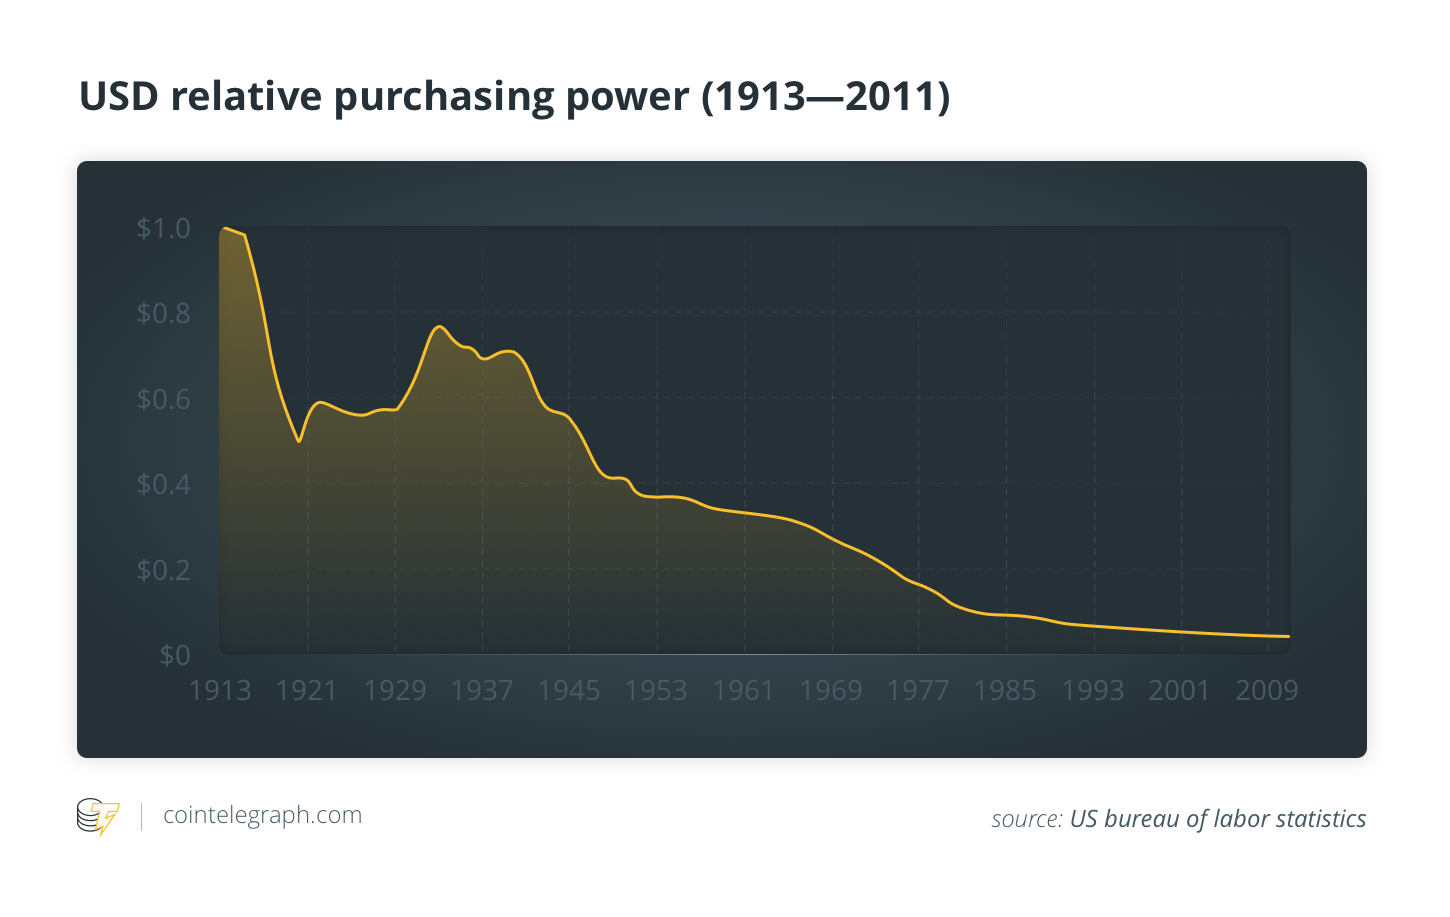 USD relative purchasing power (1913-2011)